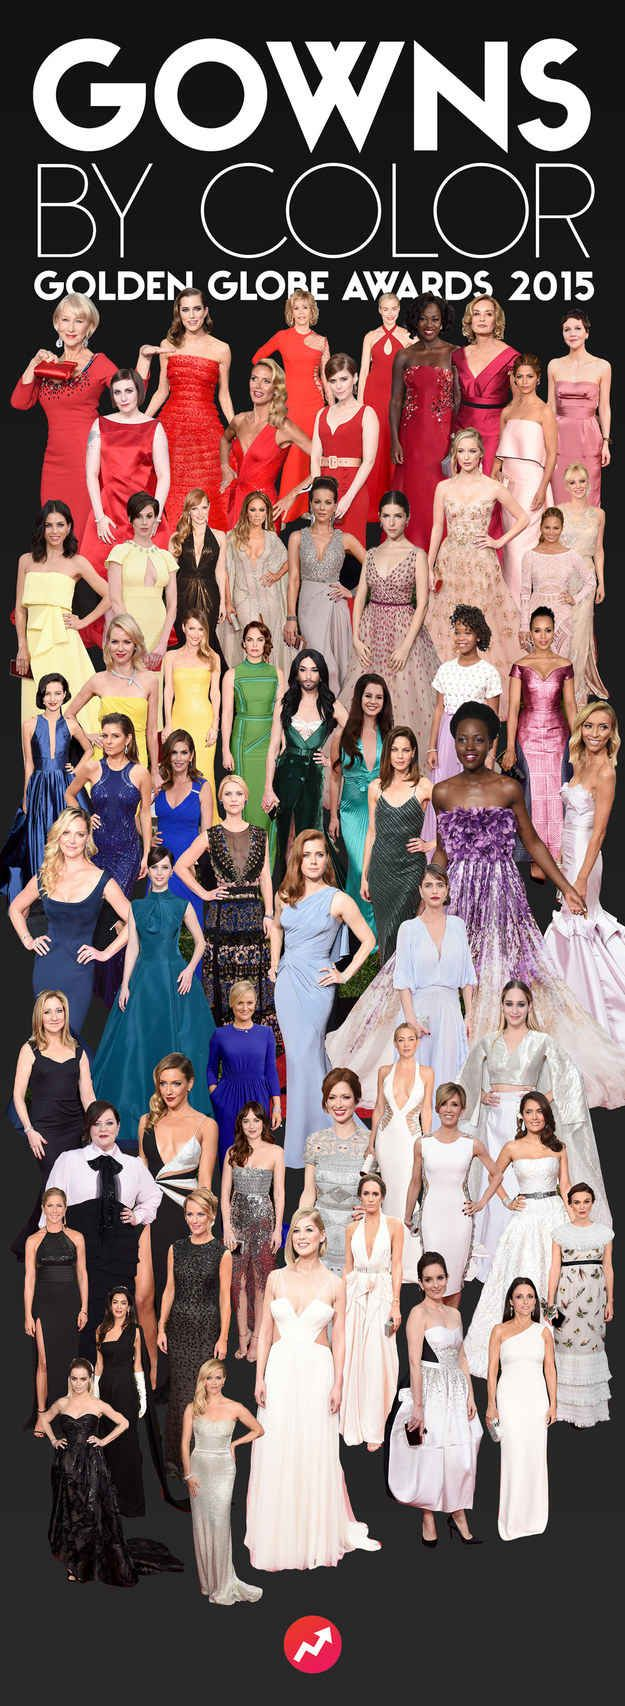 Every 2015 Golden Globe Award Gown Arranged By Color